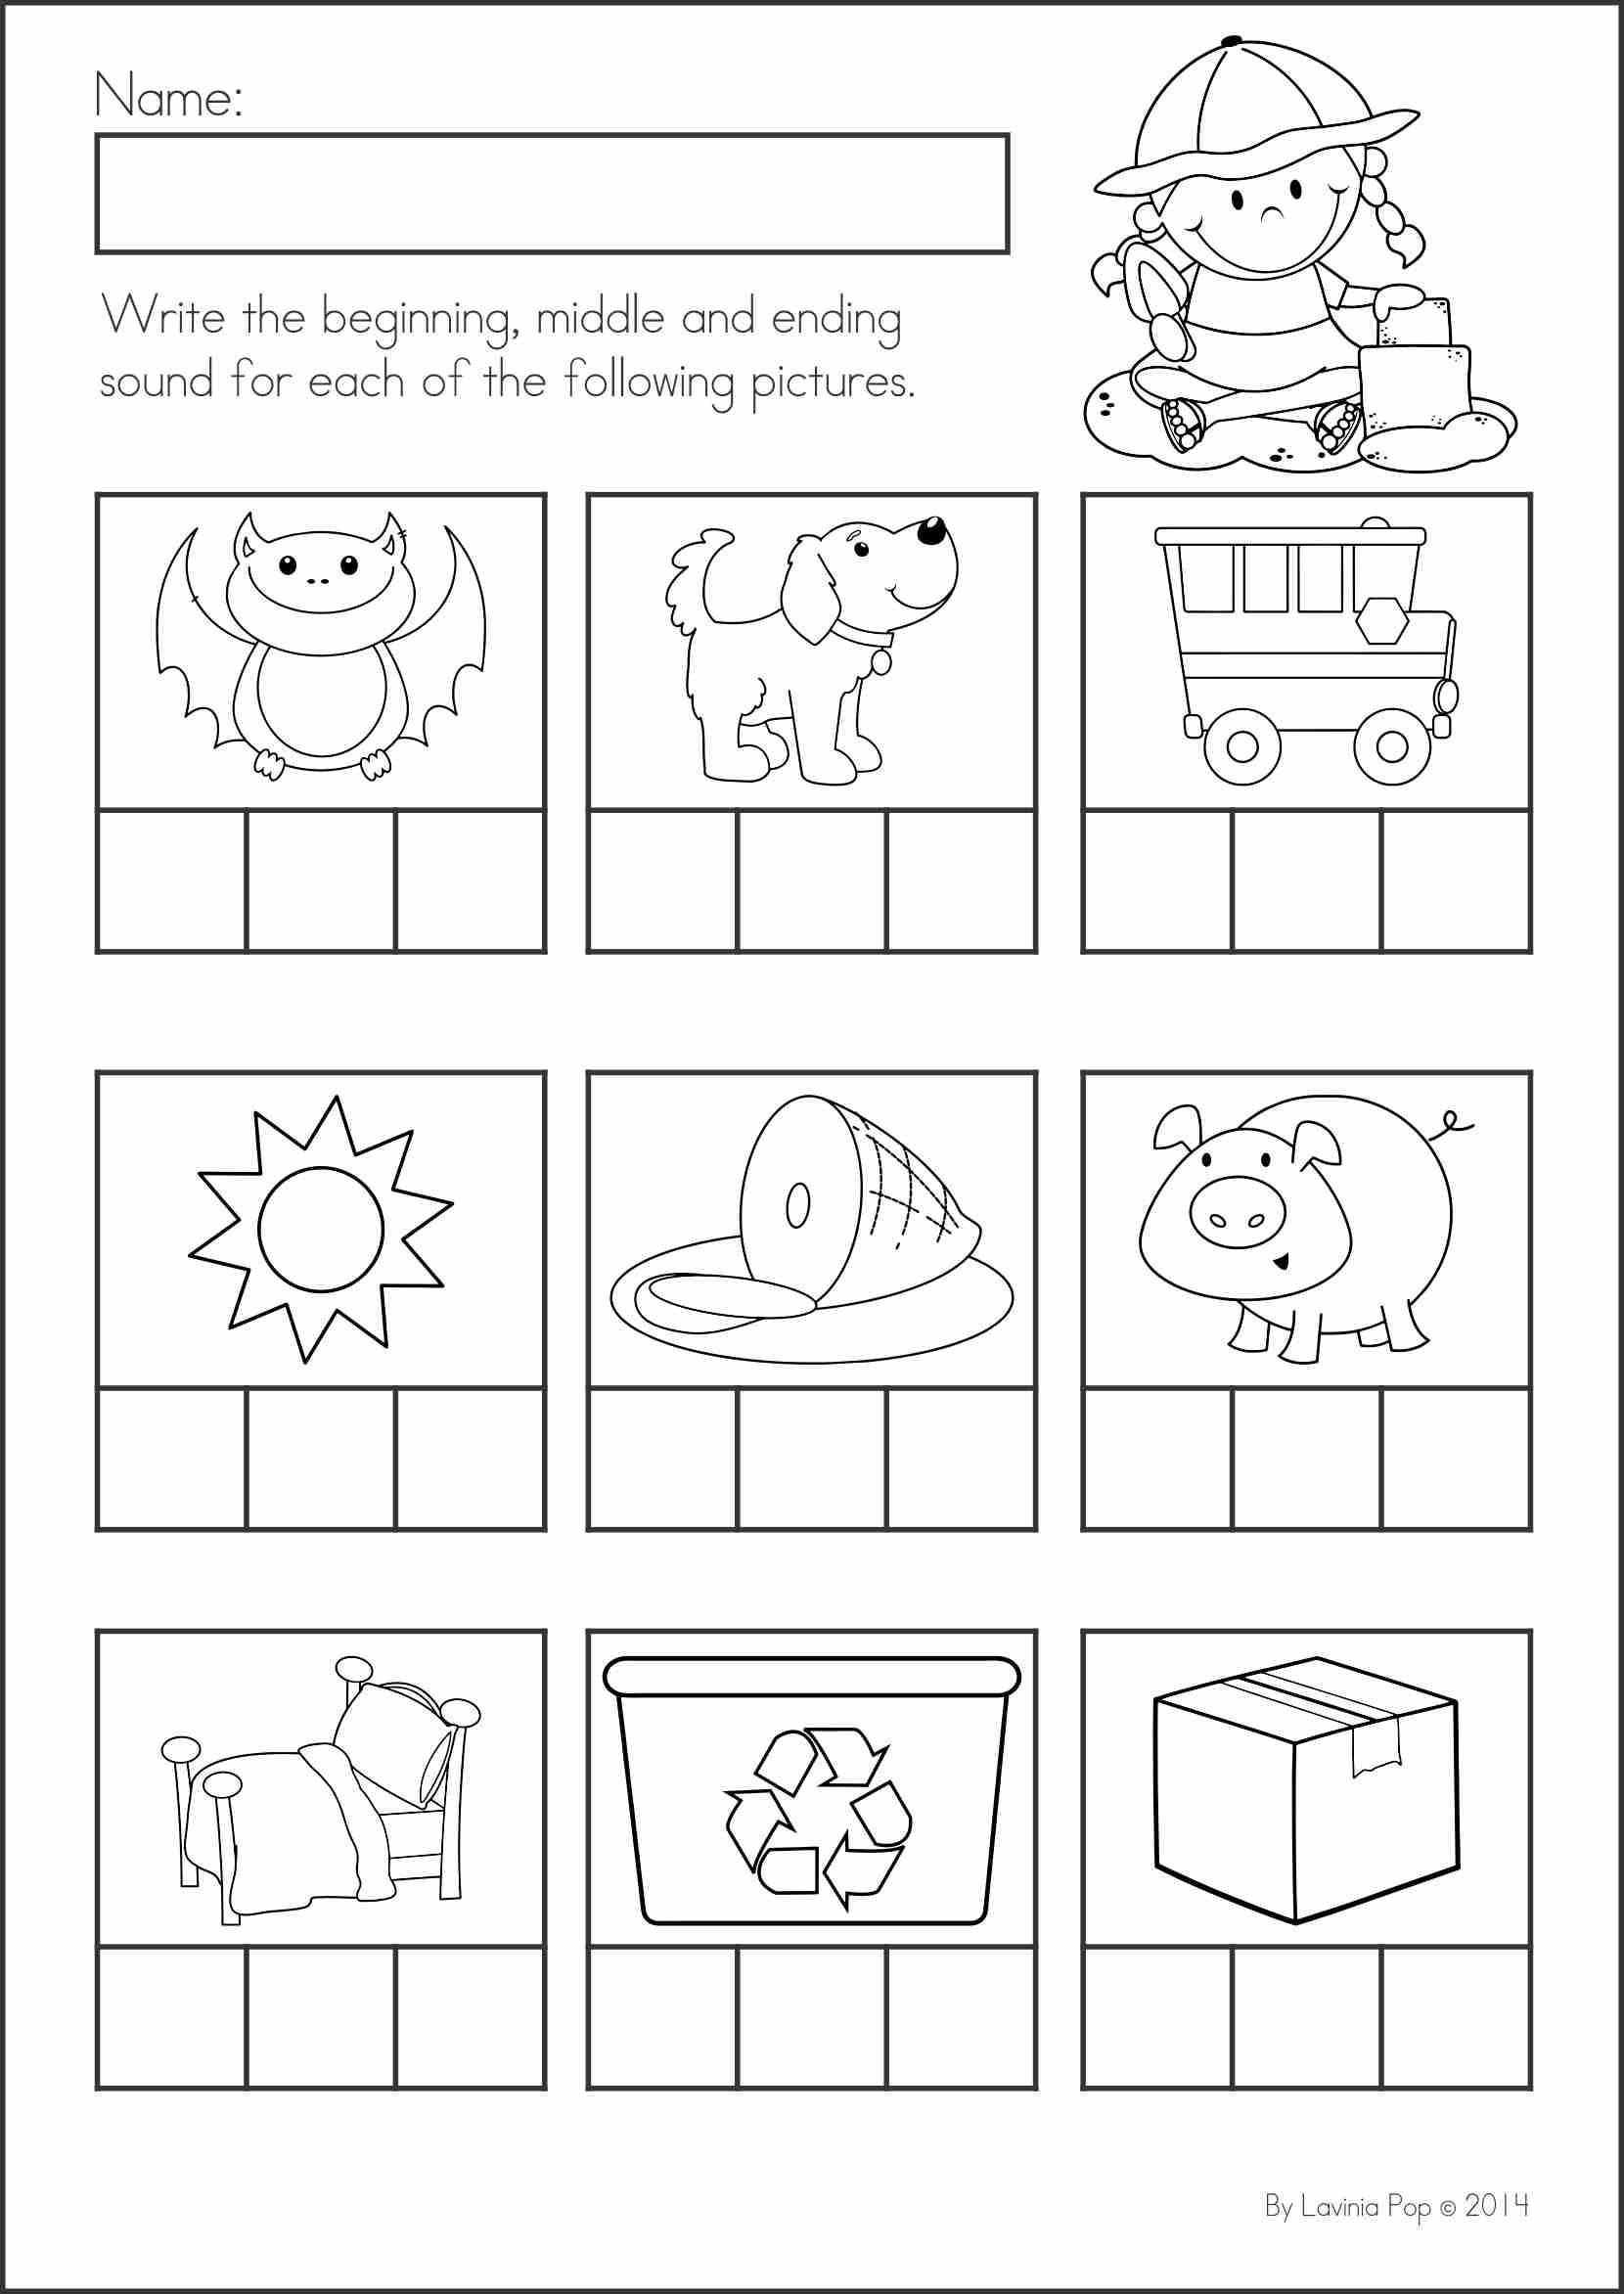 Cvc Words Worksheet Kindergarten Unique Writing Cvc Words Worksheet